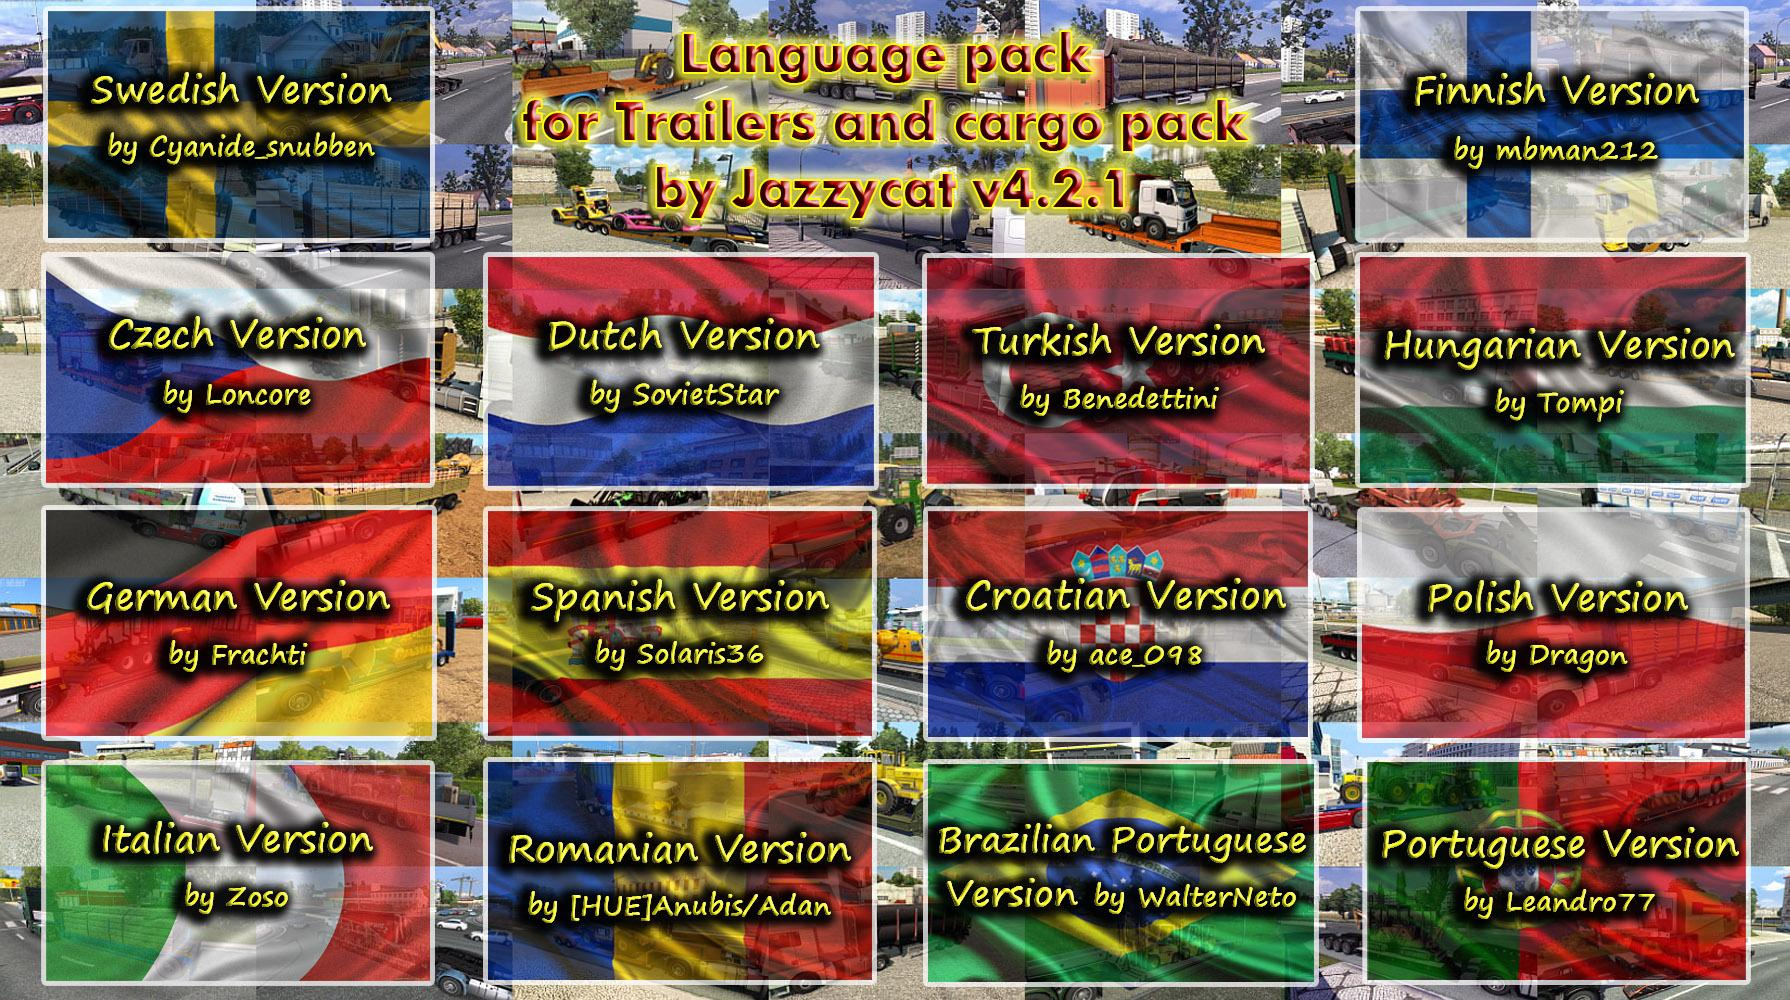 language-pack-for-trailers-and-cargo-pack-by-jazzycat-v-4-2-1_1